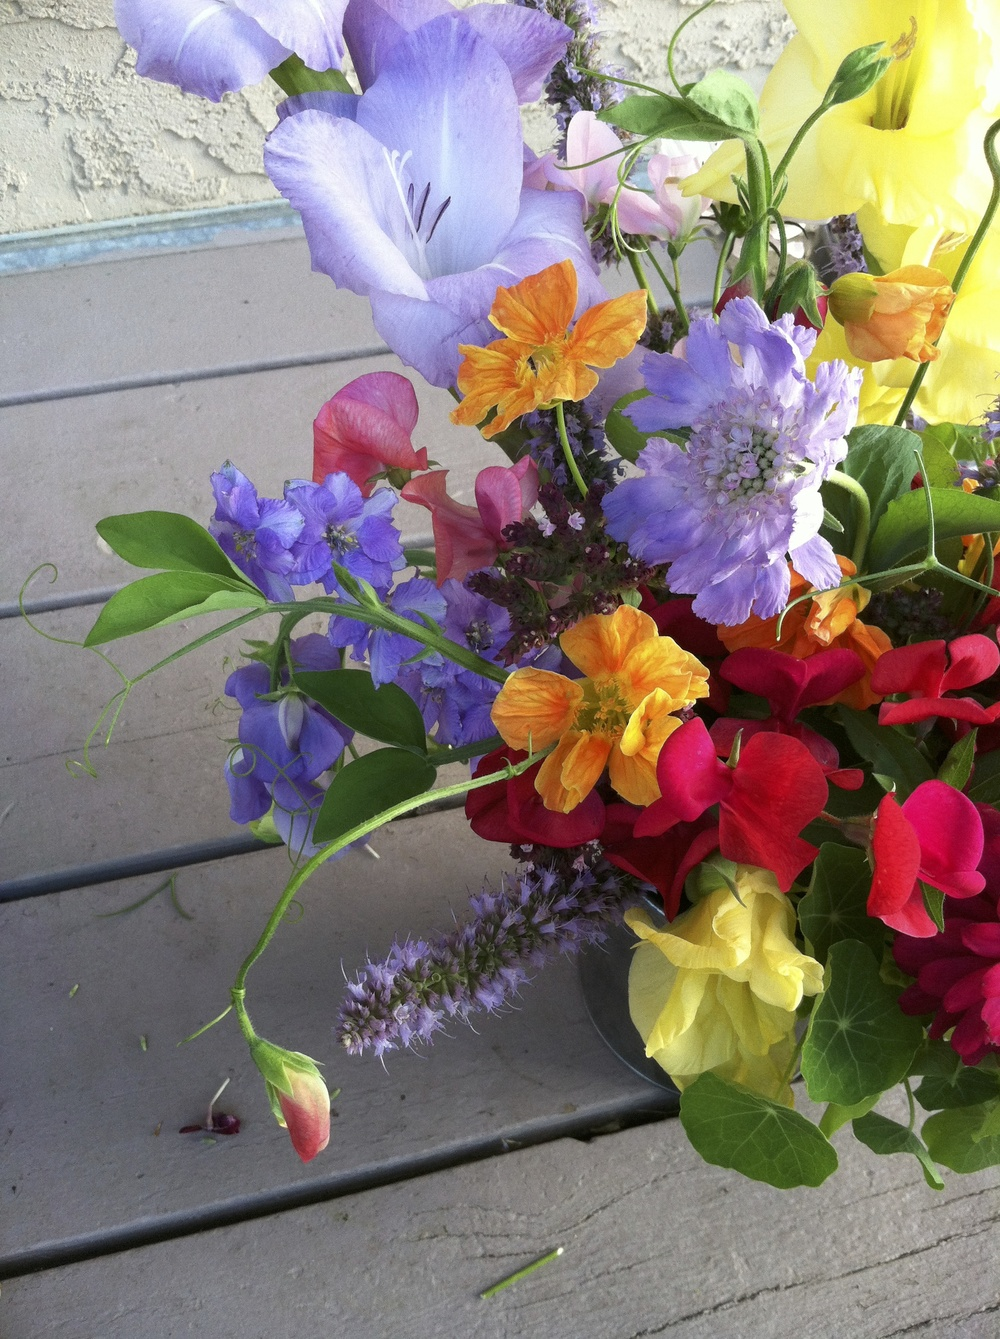 Garden arrangement from last summer with sweet peas, nasturtium, larkspur, oregano and gladioli